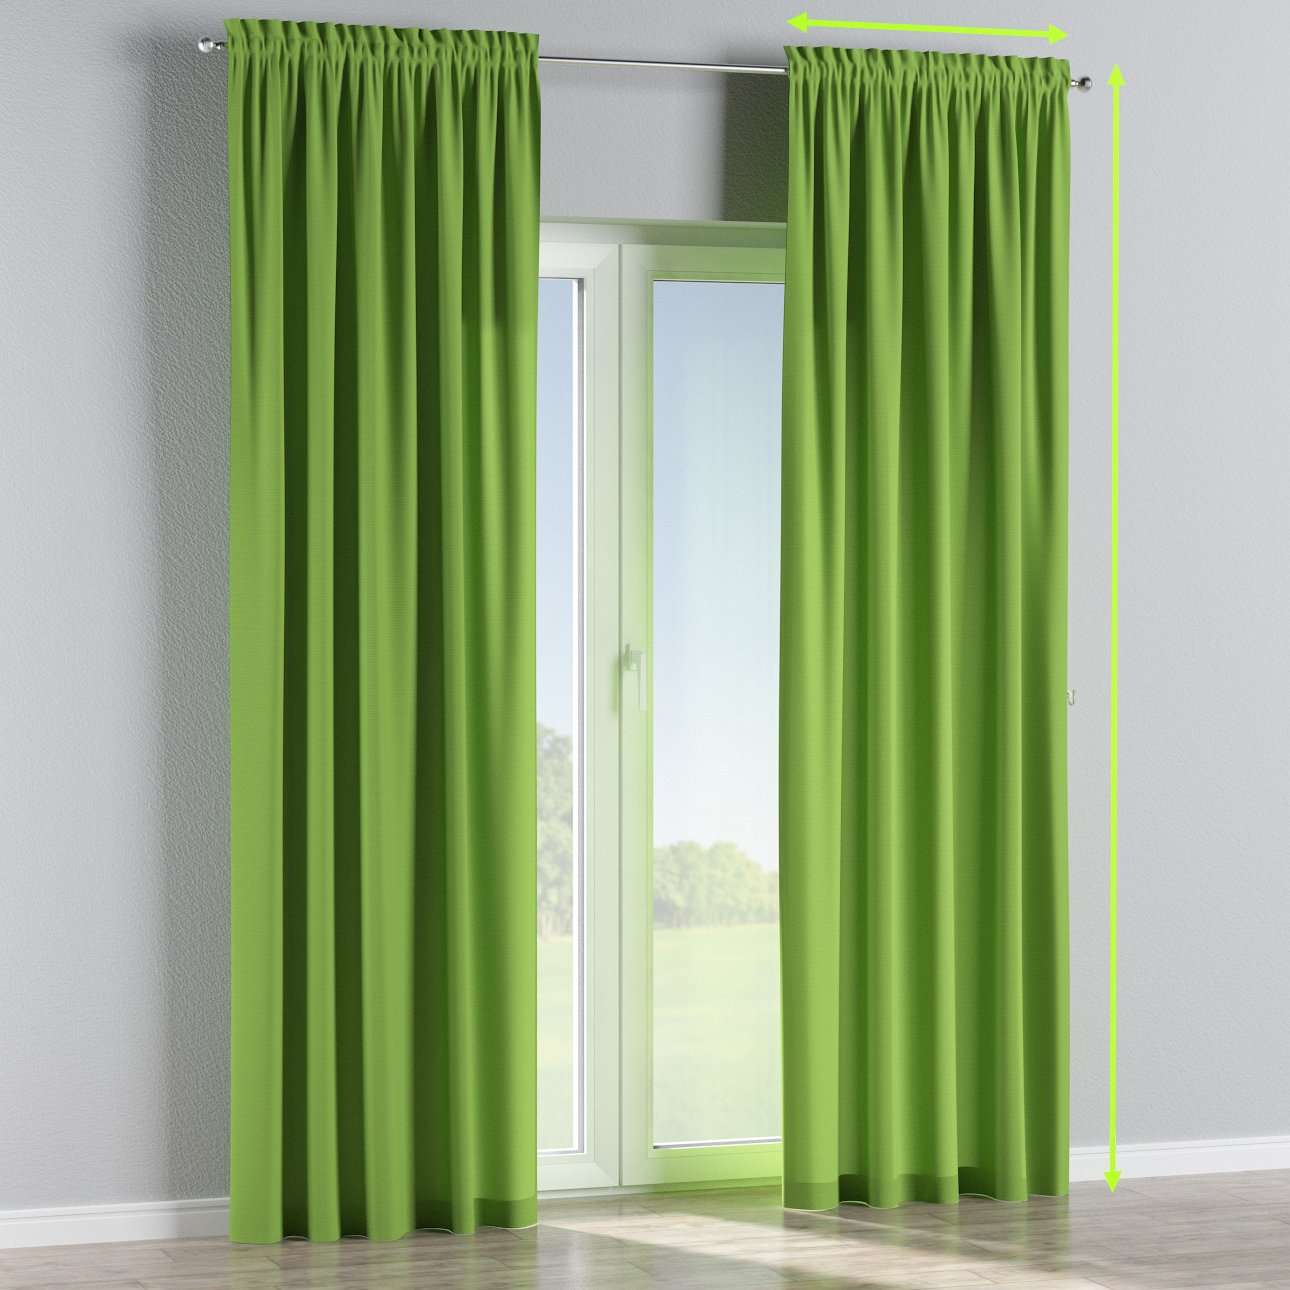 Slot and frill lined curtains in collection Cotton Panama, fabric: 702-27